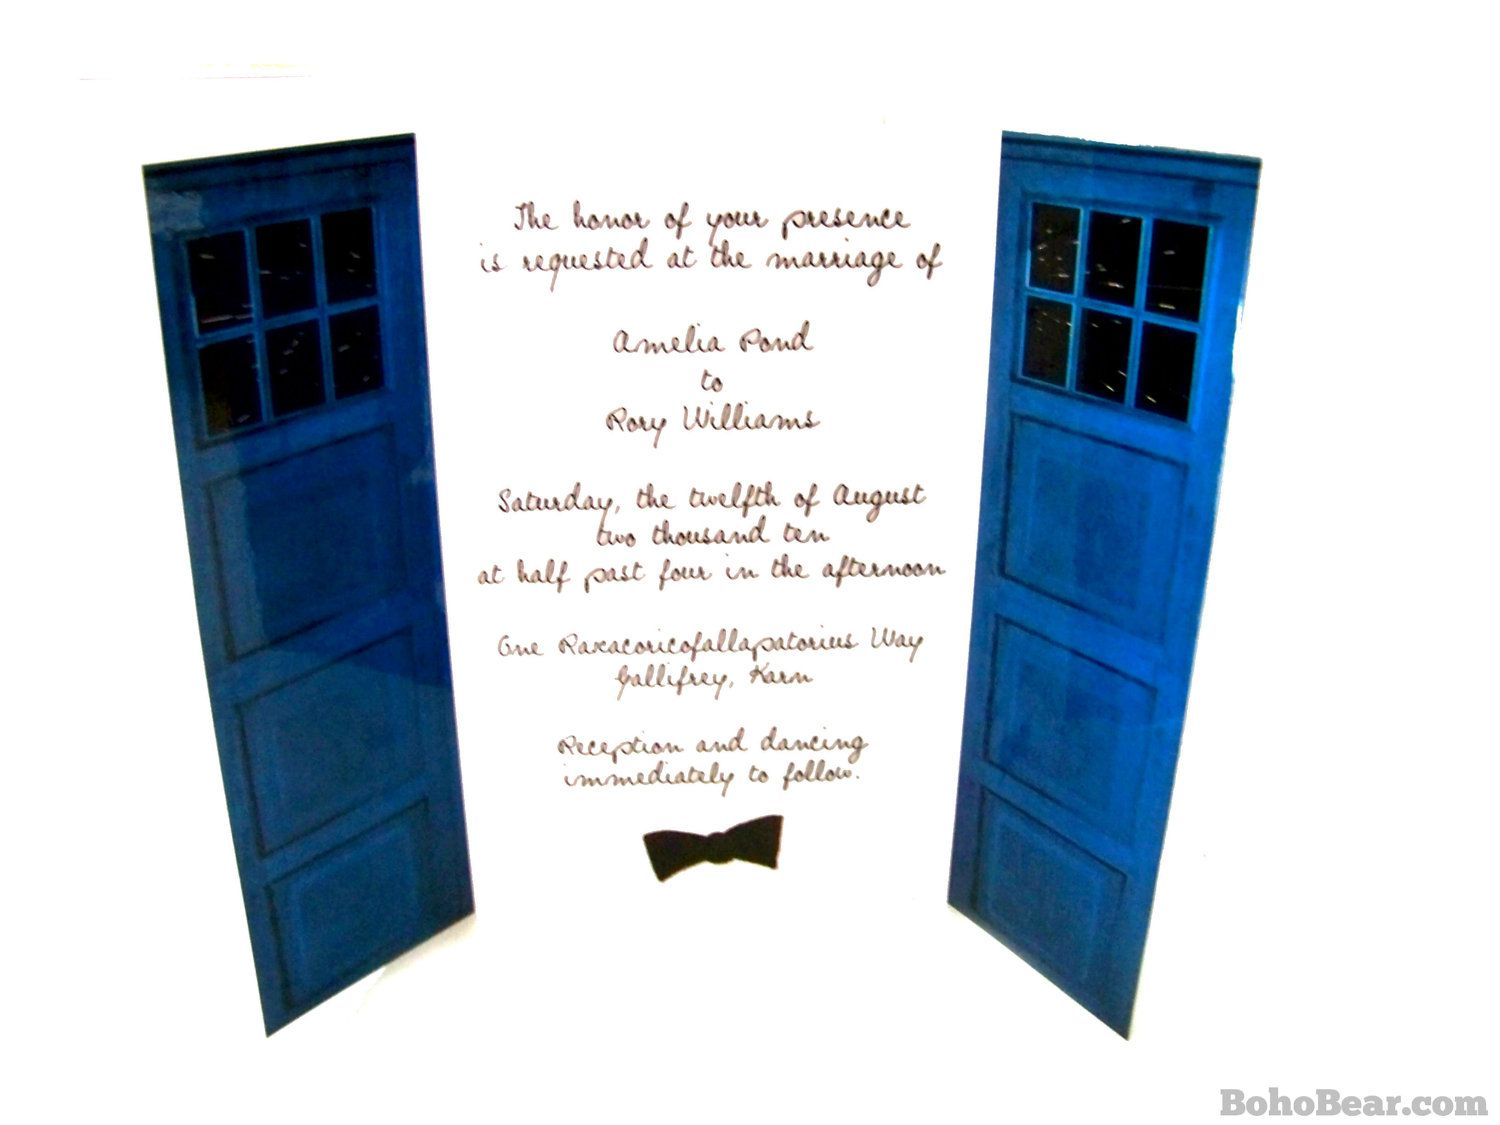 Customized printable wedding invitations doctor who inspired tardis customized printable wedding invitations doctor who inspired tardis cards print them yourself diy brides stopboris Image collections